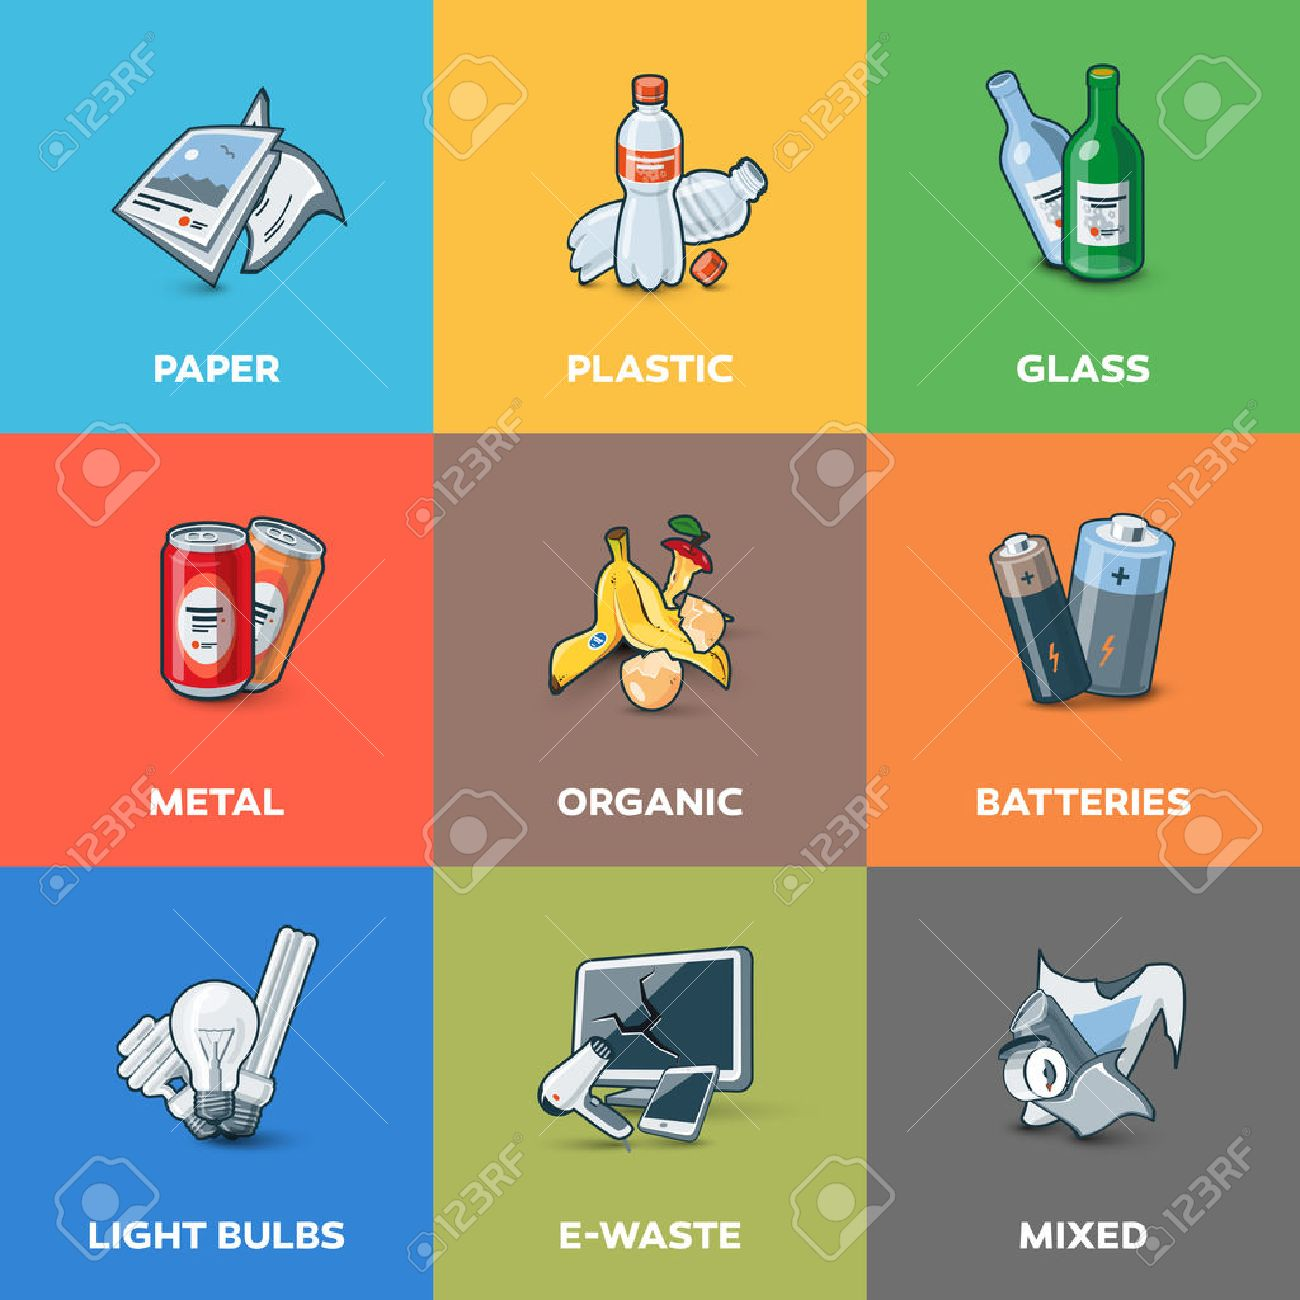 Illustration of trash categories with organic, paper, plastic, glass, metal, e-waste, batteries, light bulbs and mixed waste. Waste types segregation recycling management concept. - 43473983